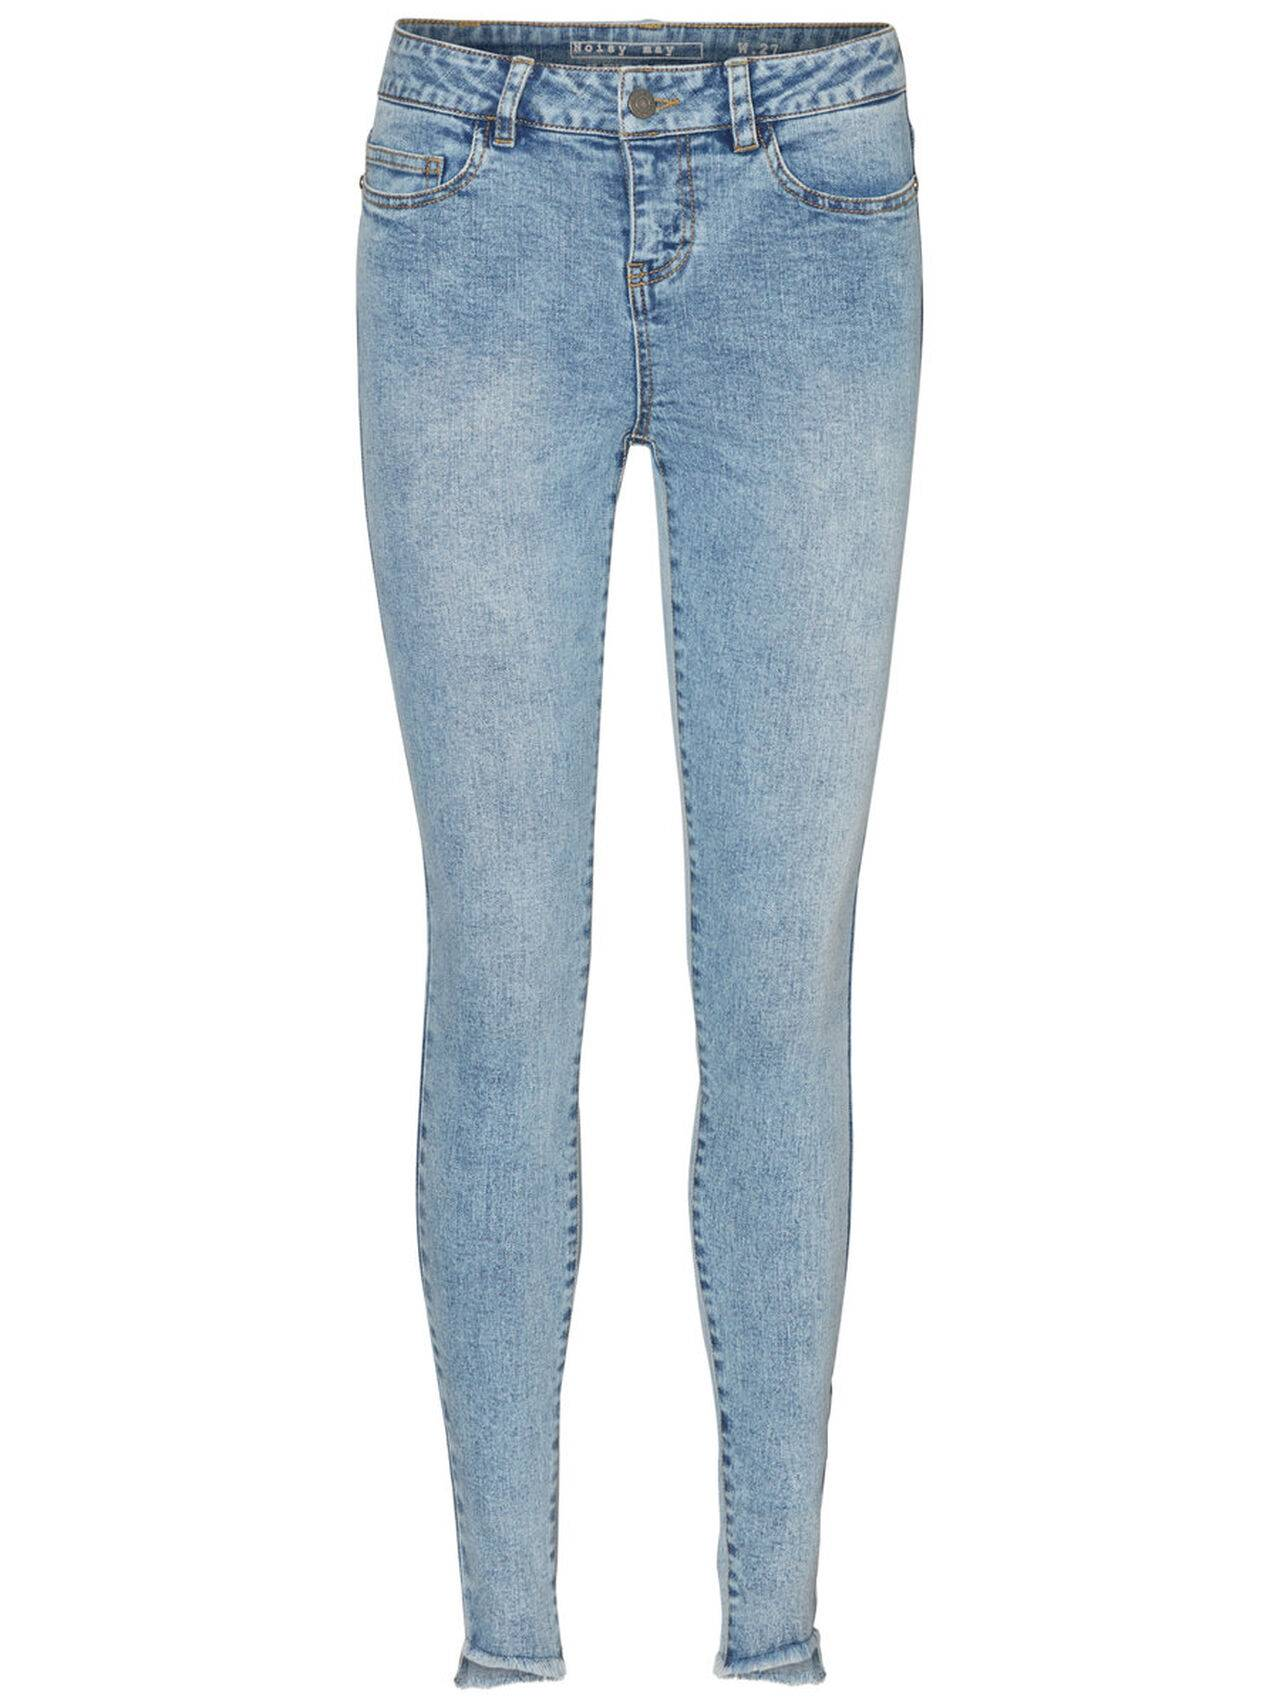 Vero Moda Lucy Nw Ankle Jeans